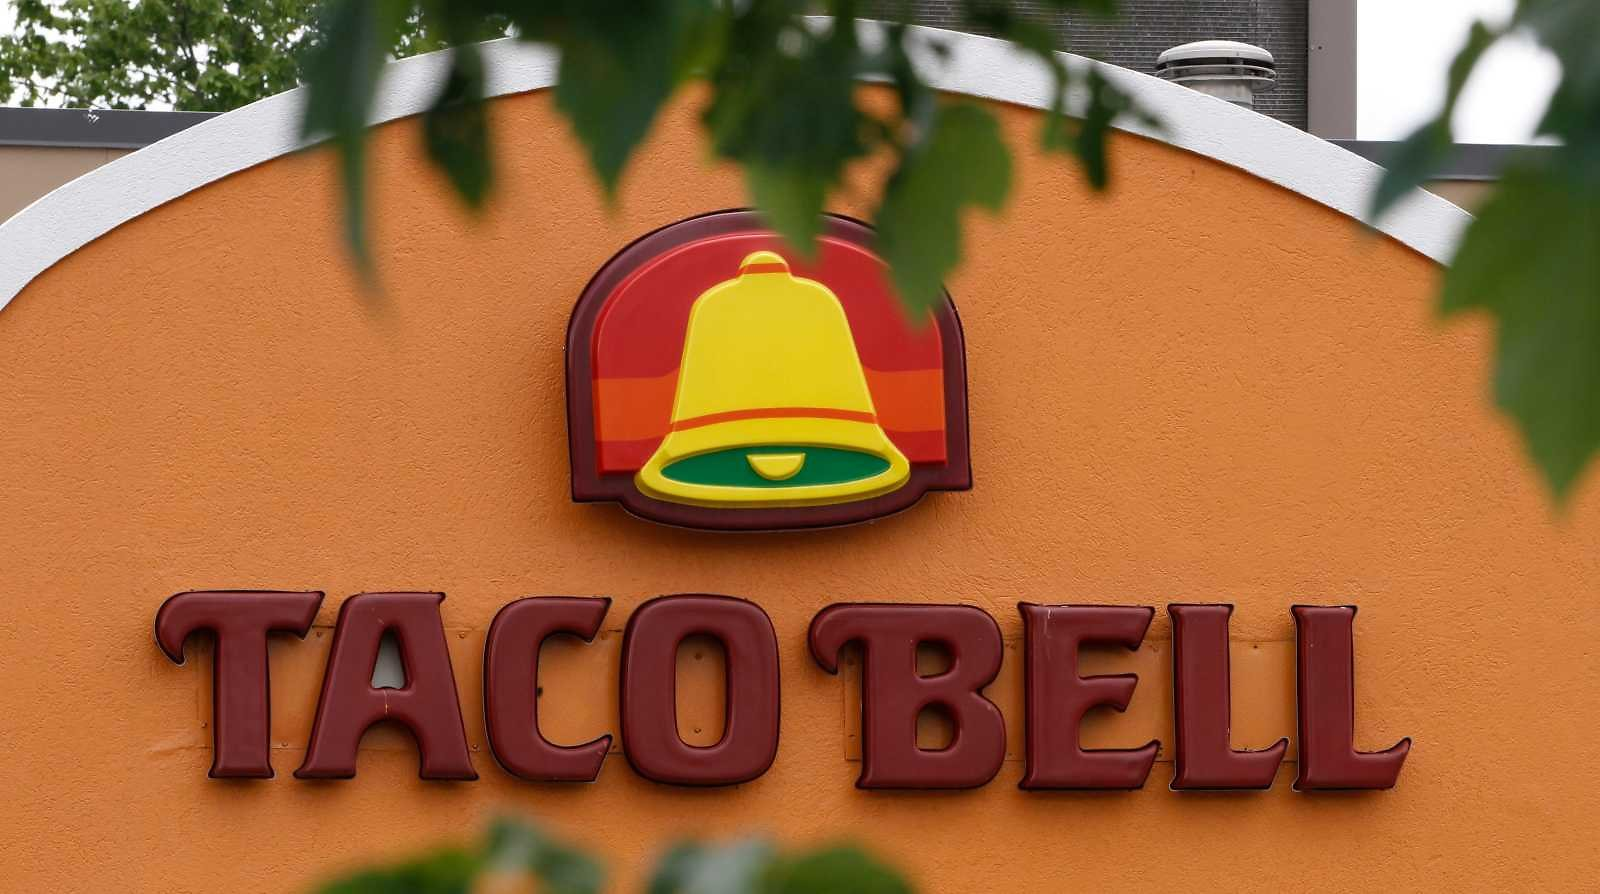 Taco Bell to Add Nacho Fries, Bacon Club Chalupa Starting Christmas Eve After Cutting Menu Amid COVID-19